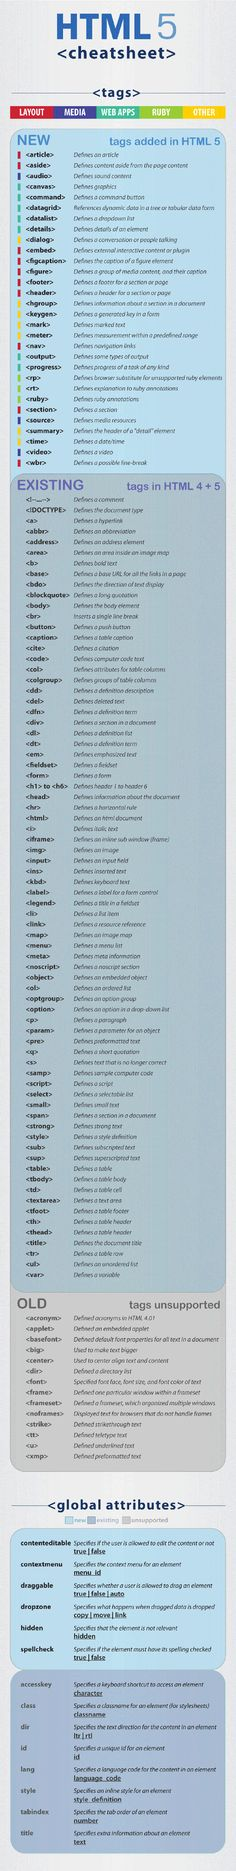 HTML cheatsheet. It's like a bible!!! This is totally going to come in handy at work--print please. @sarahbear0259 if only we'd had this when doing that stupid website...